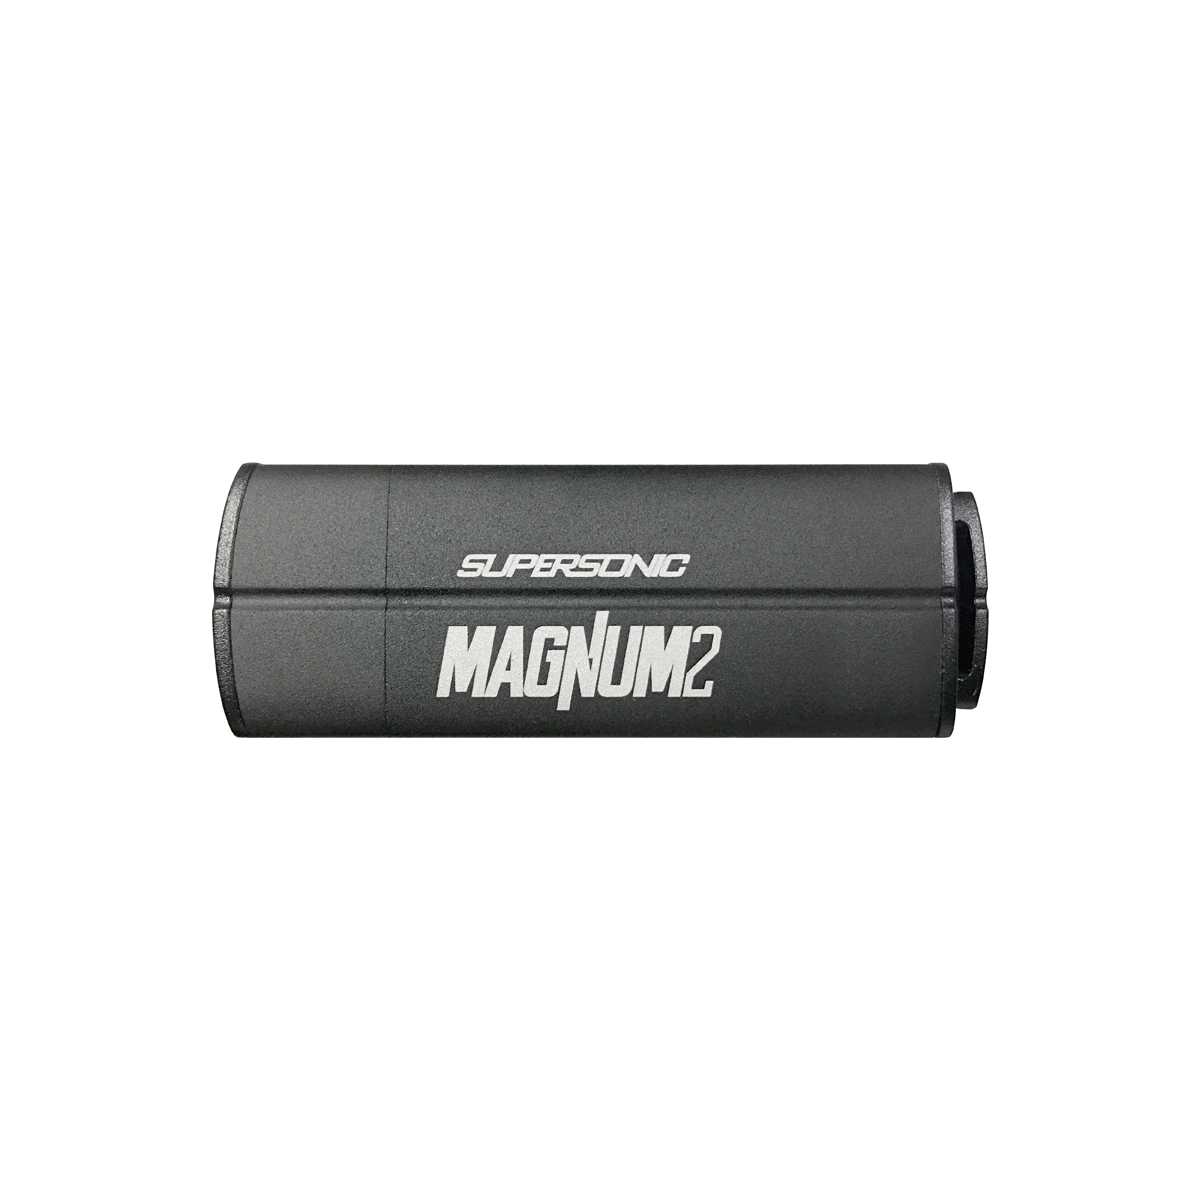 512GB Patriot Supersonic Magnum 2 USB 3.0 400/300MBs